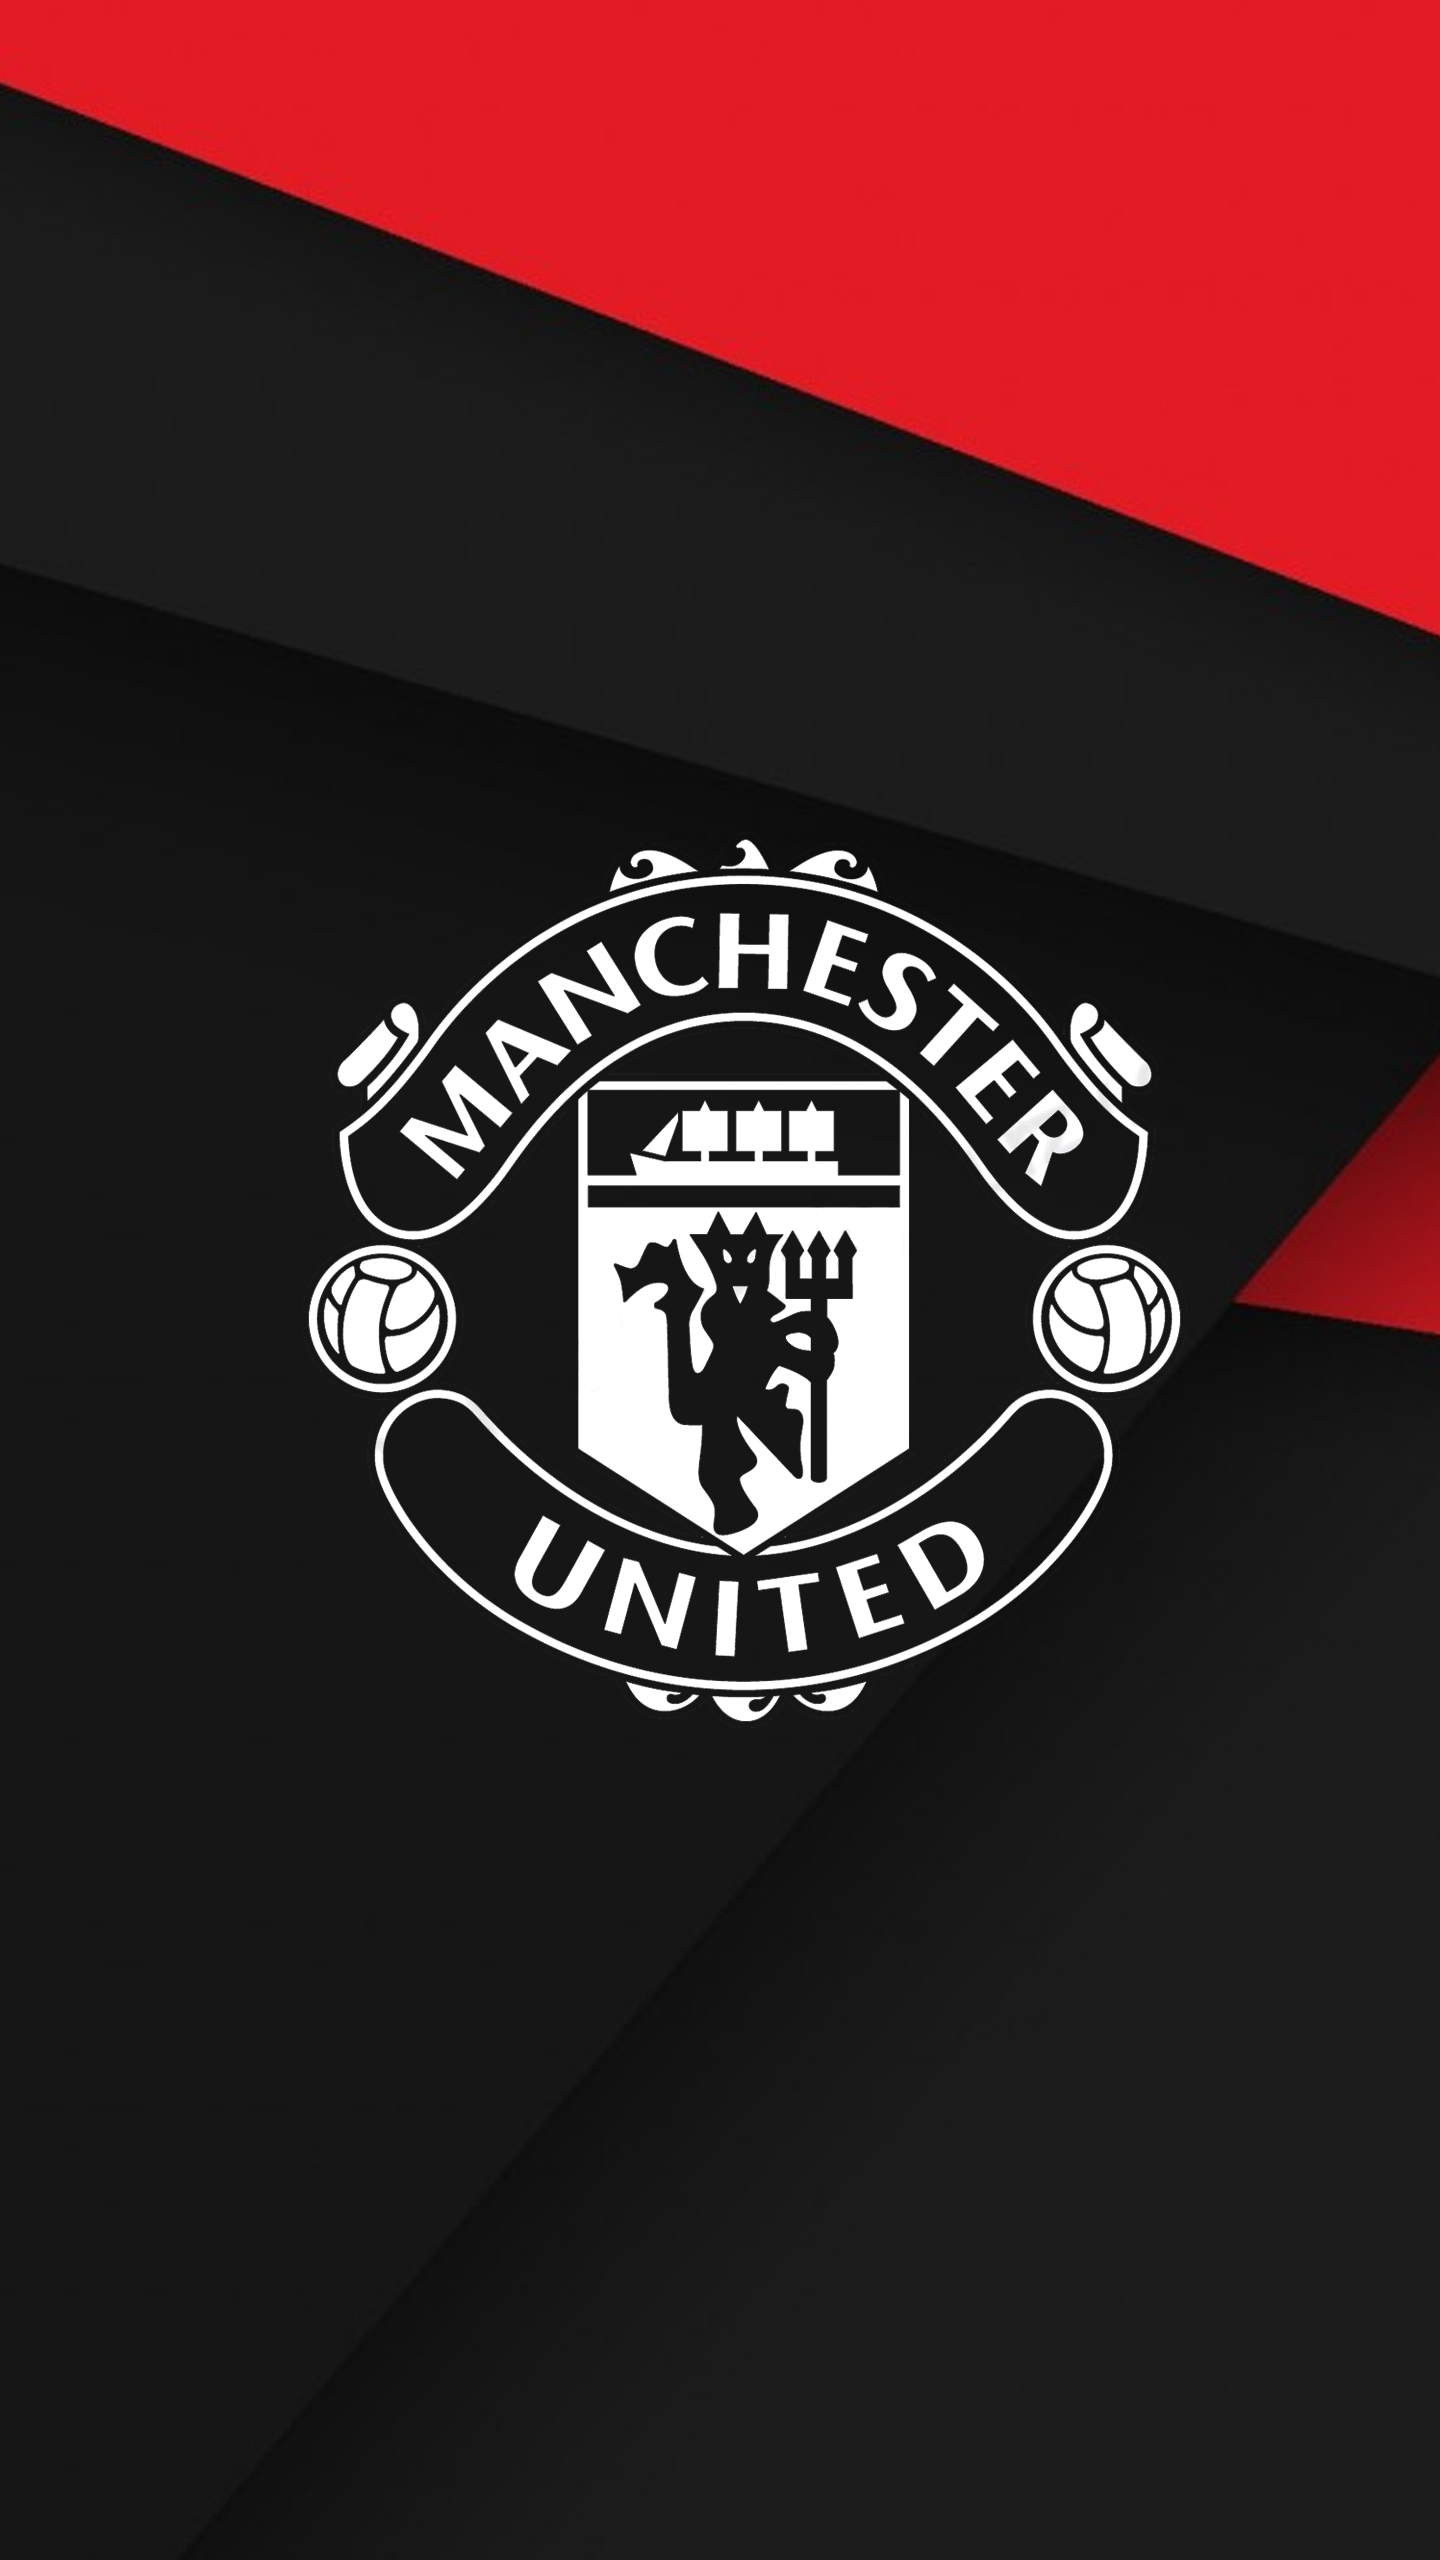 Manchester united phone wallpapers wallpaper pinterest manchester united phone wallpapers voltagebd